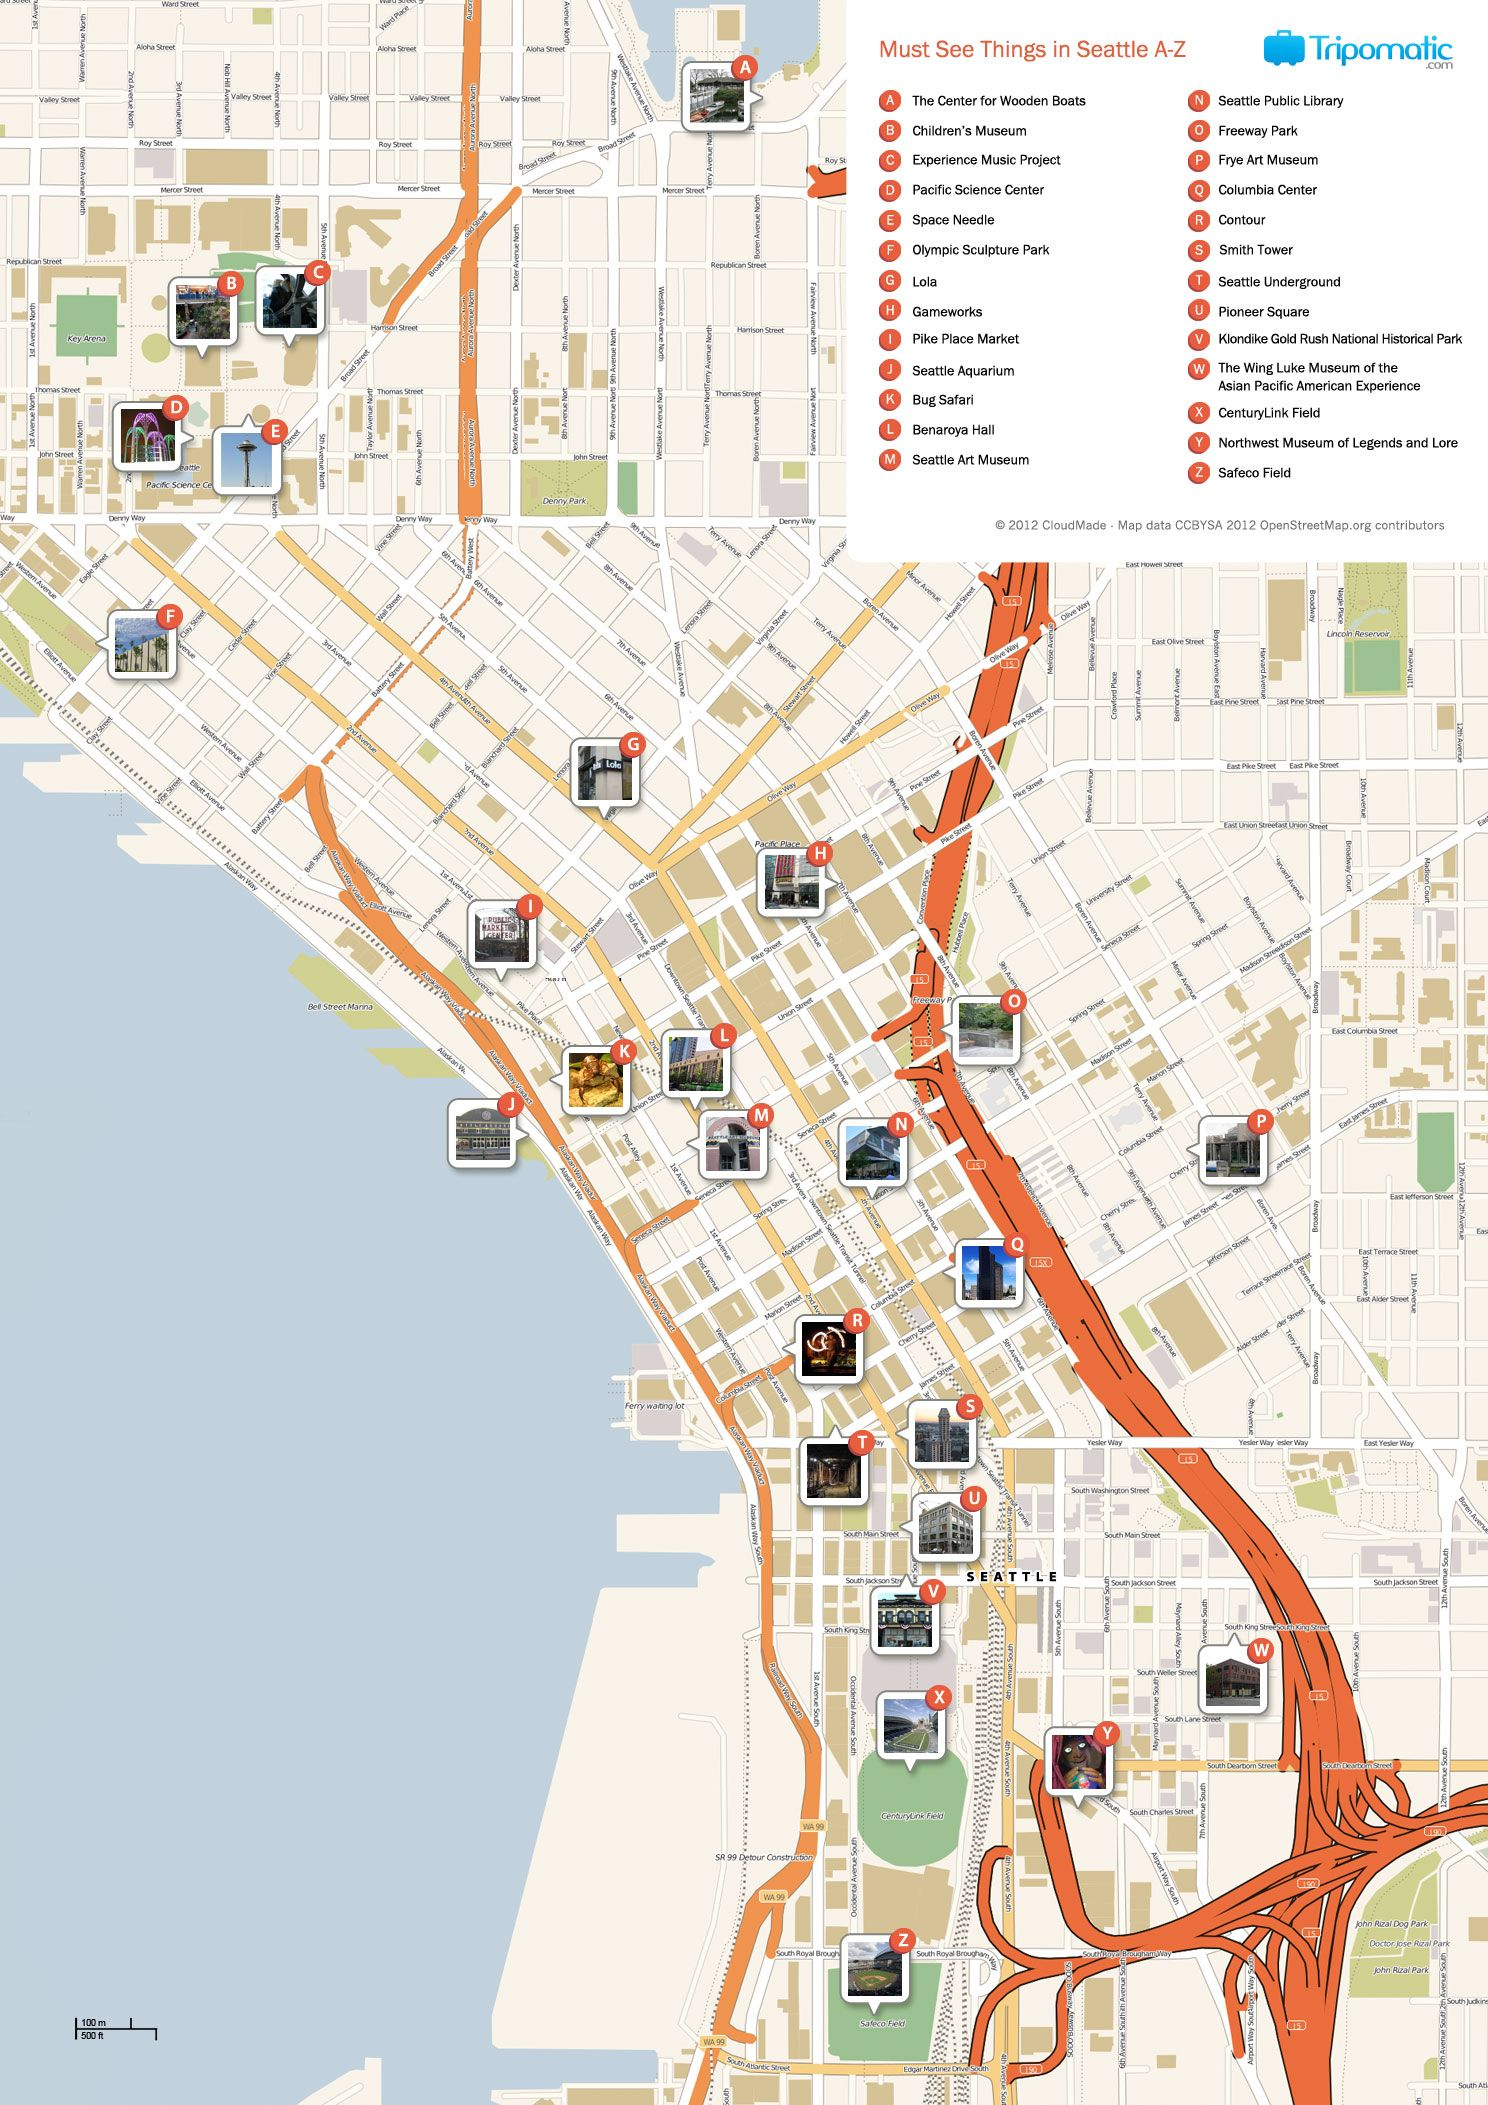 Free Printable Map of Seattle attractions from Tripomatic Get – Tourist Attractions Map In Washington State